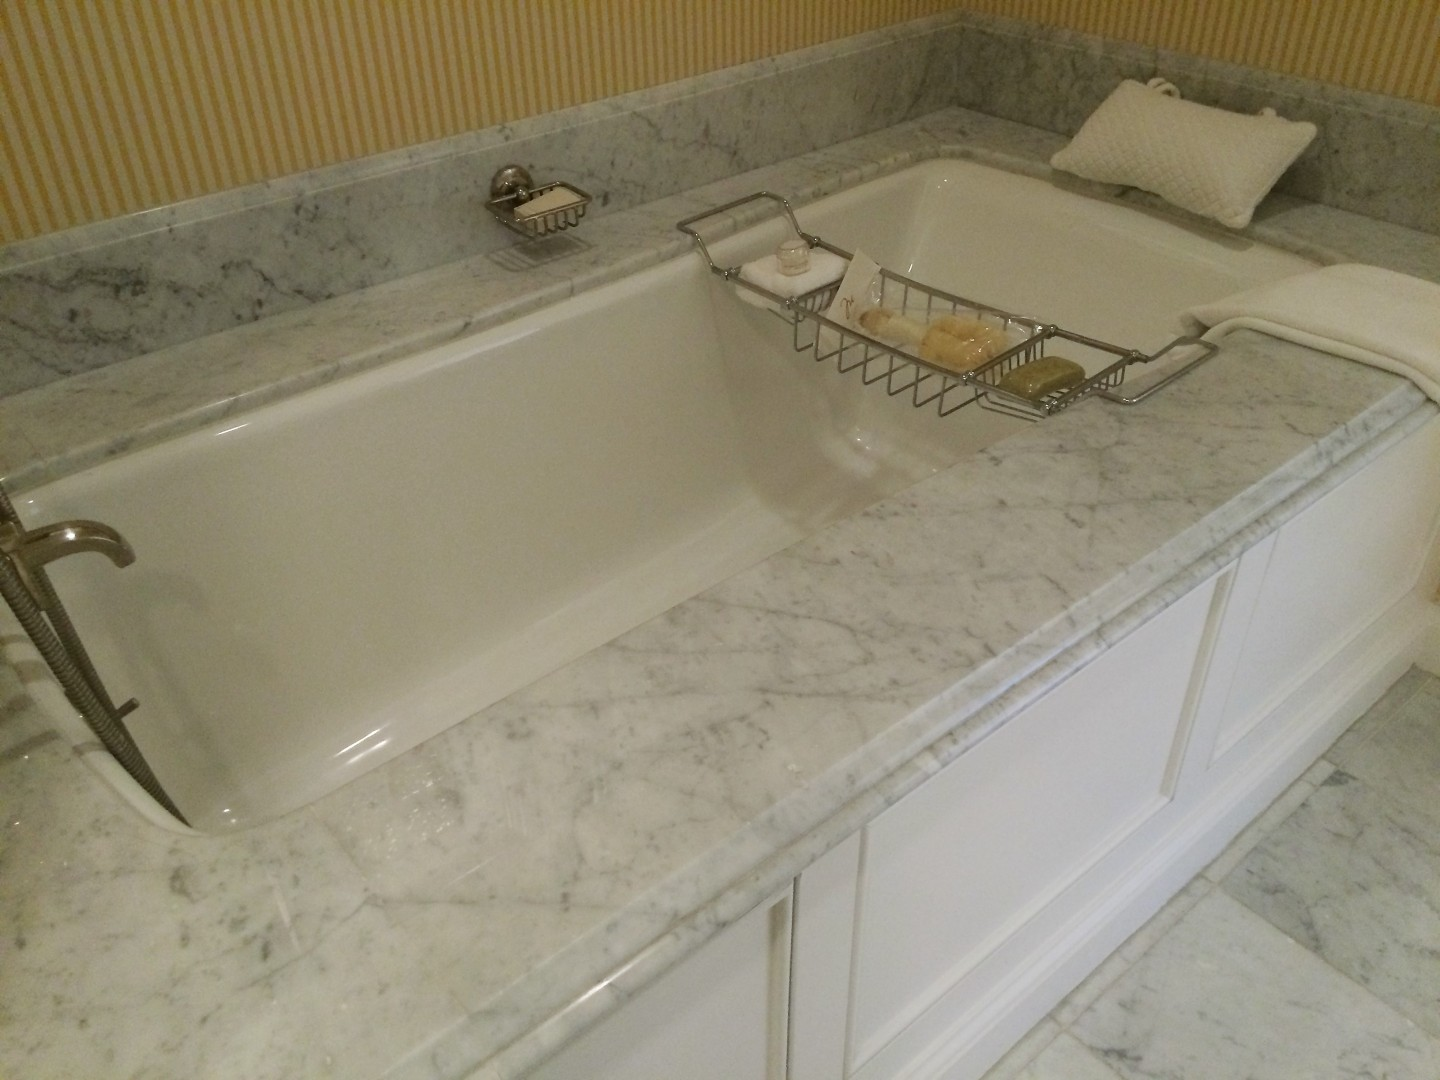 Look closely, and you'll see that the marble bathtub has a rack for keeping doodads, and a pillow (a pillow!).